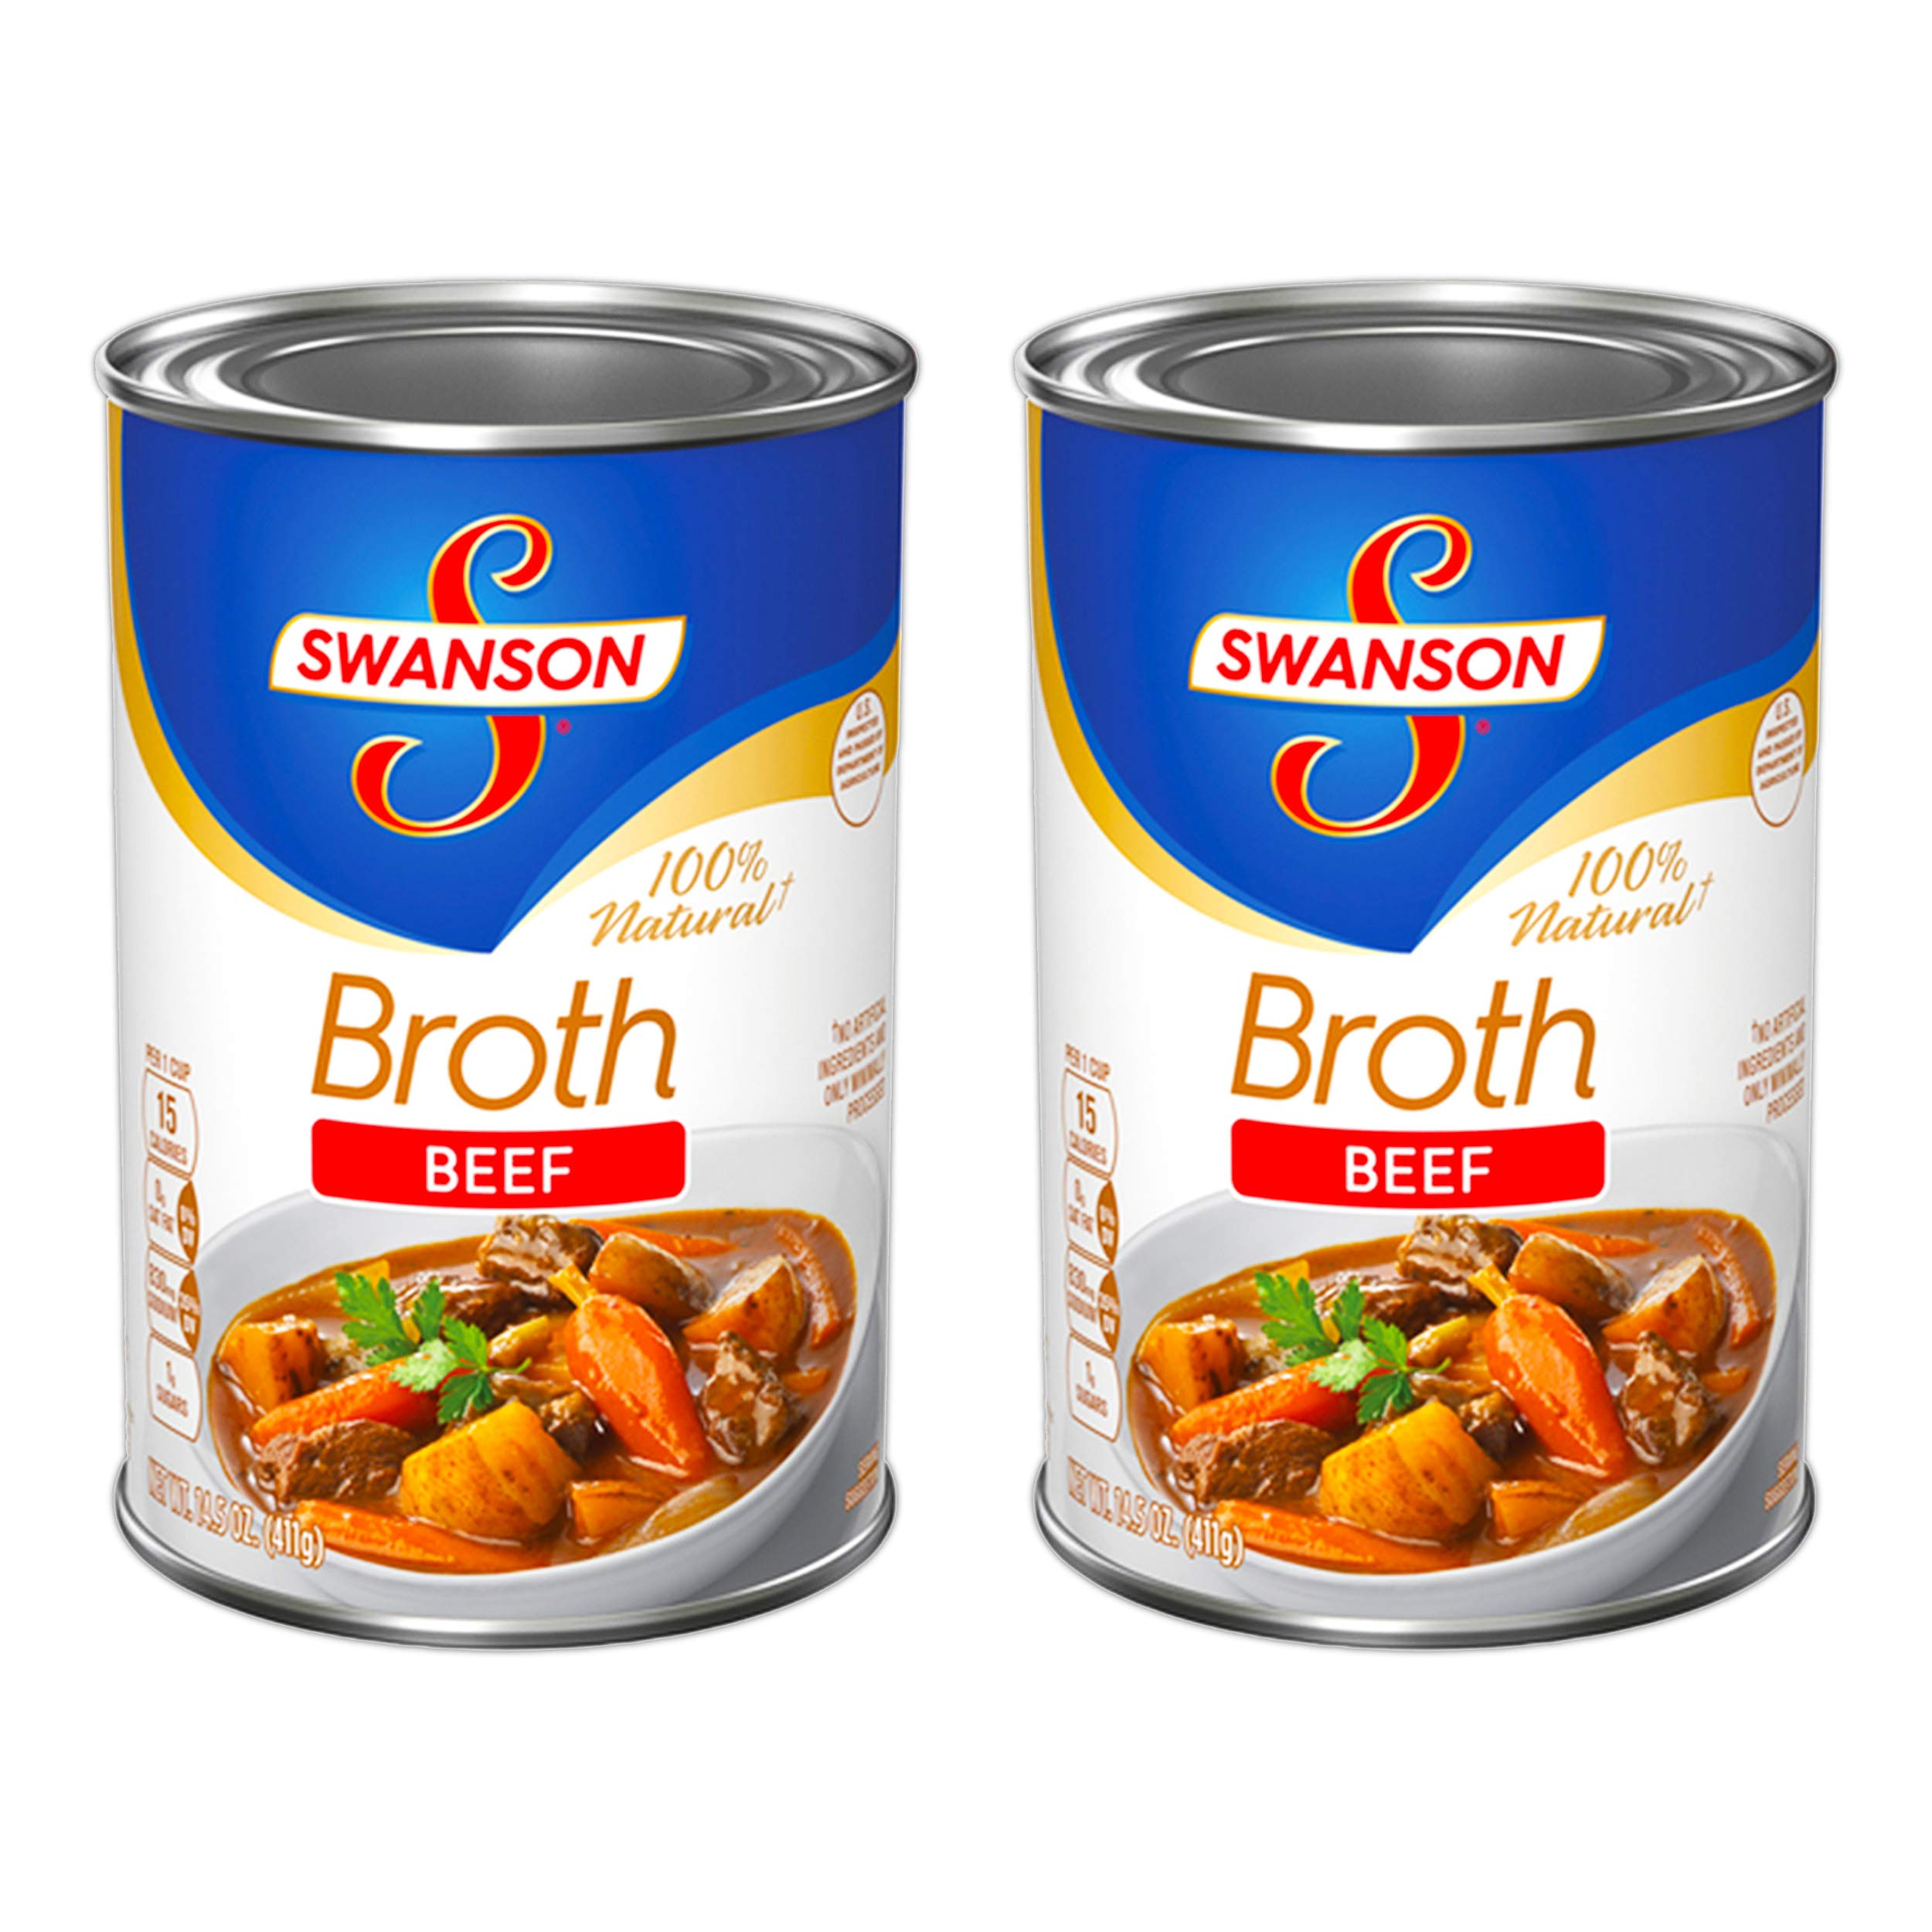 Swanson 100% Natural Beef Broth 14.5 Oz (Pack of 2)